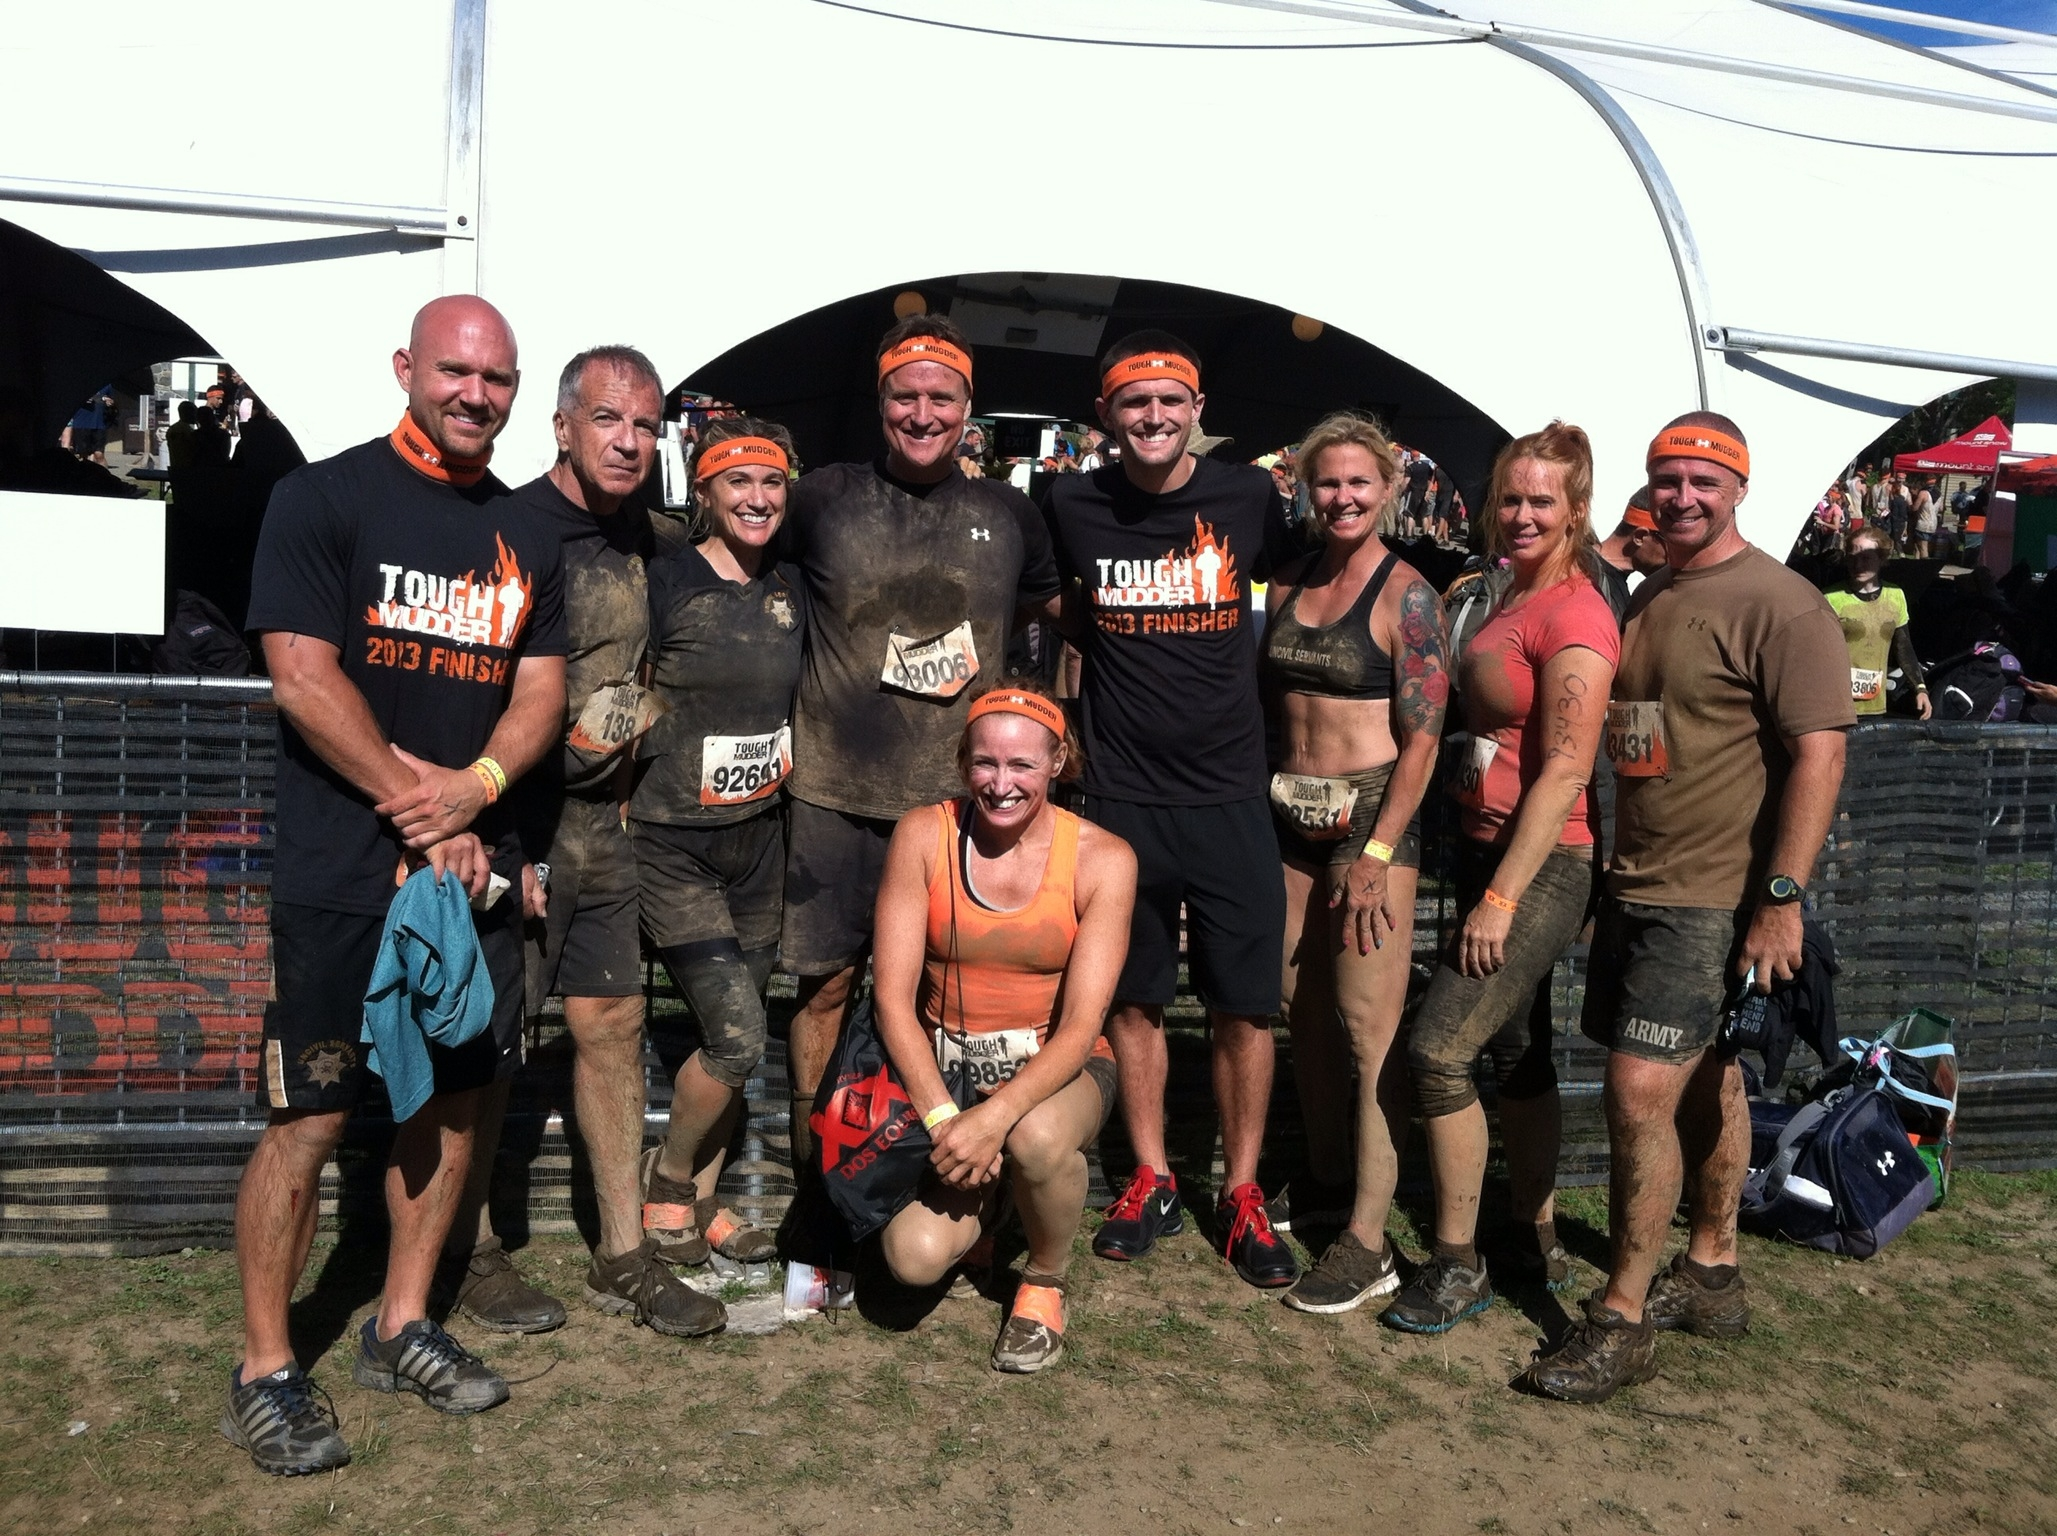 2013 New England Tough Mudder 8-10-13.jpg